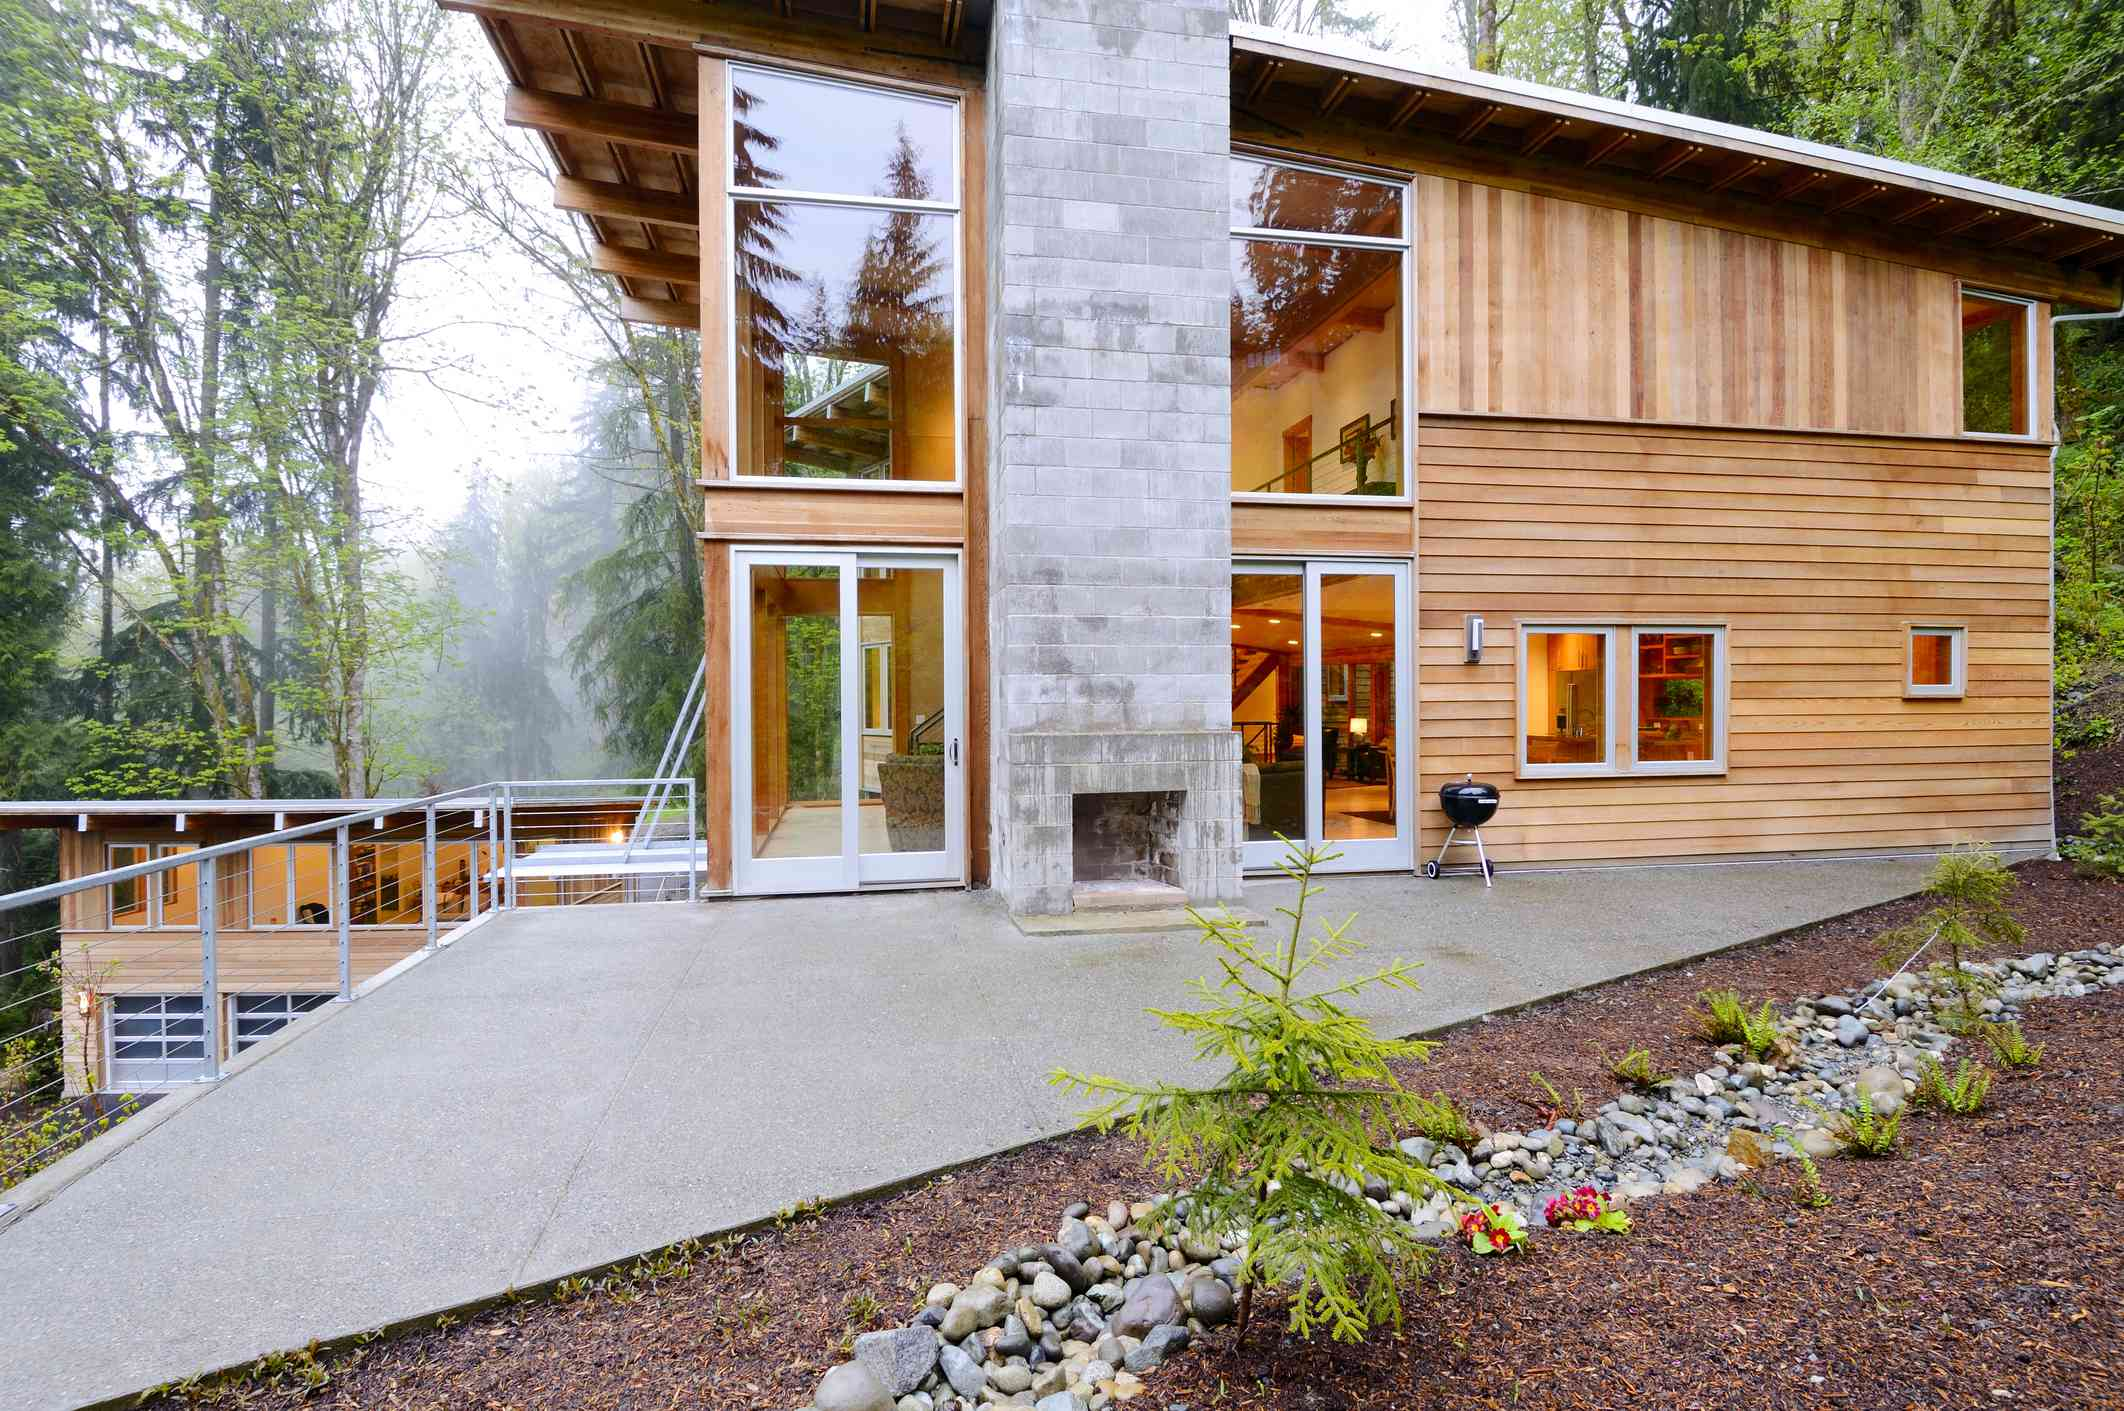 wood-clad contemporary home in a forest setting